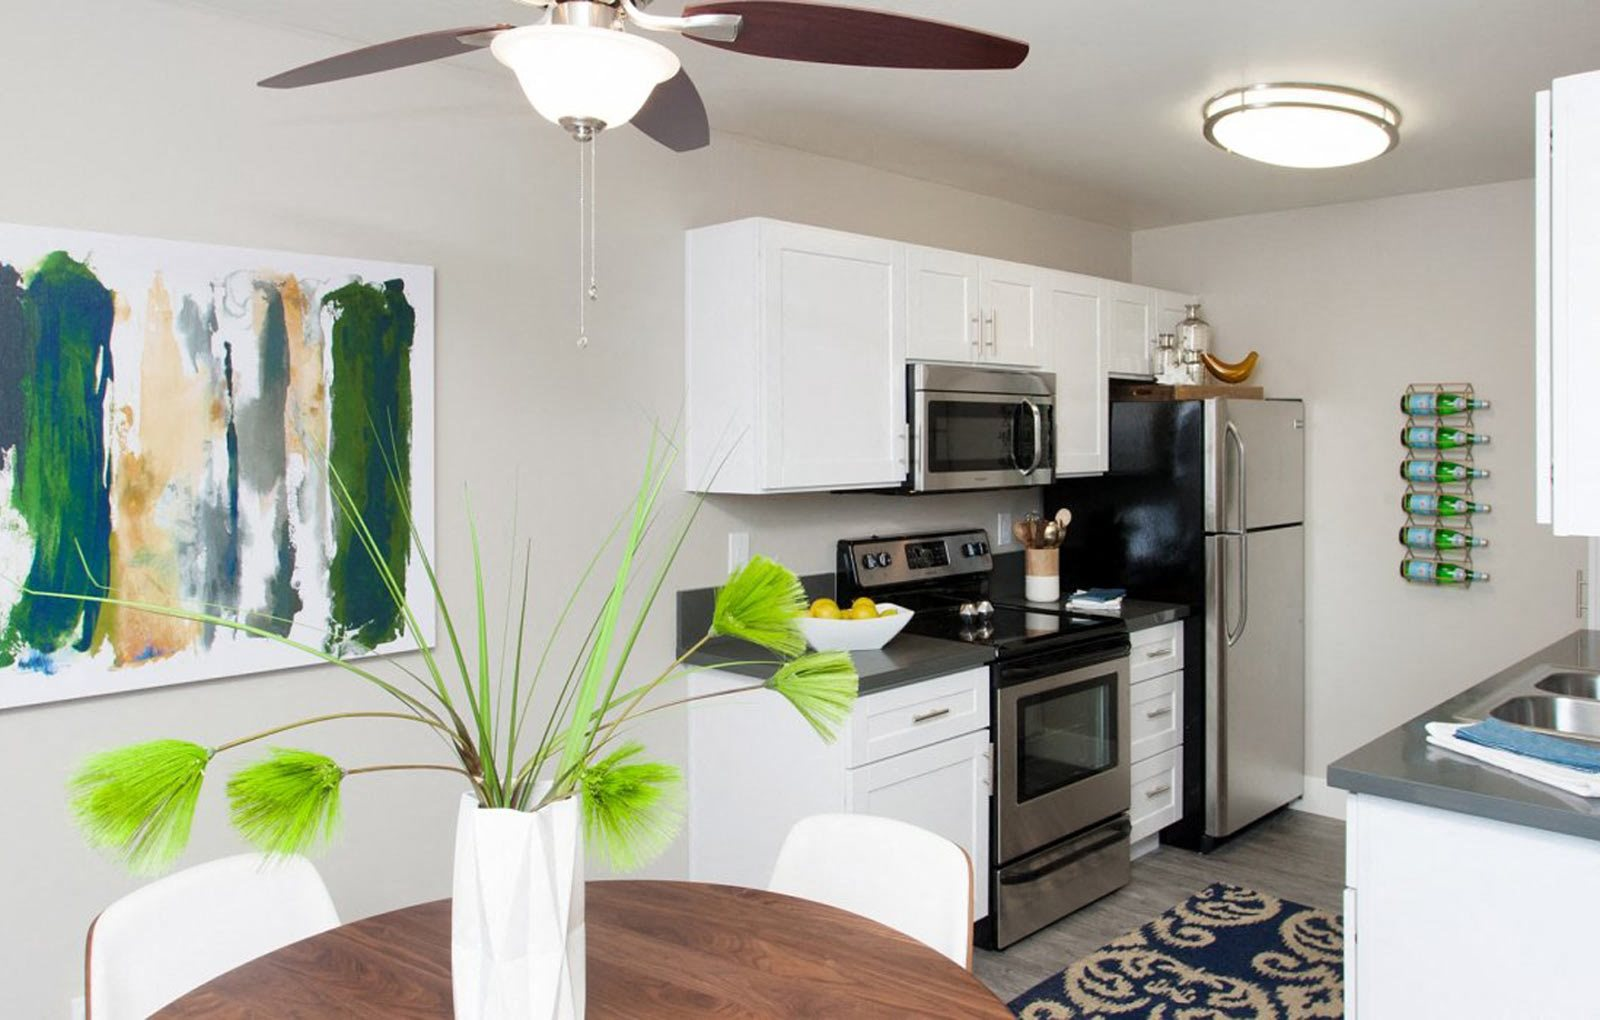 Kitchen | Stoneridge Luxury Apartments in Walnut Creek, CA